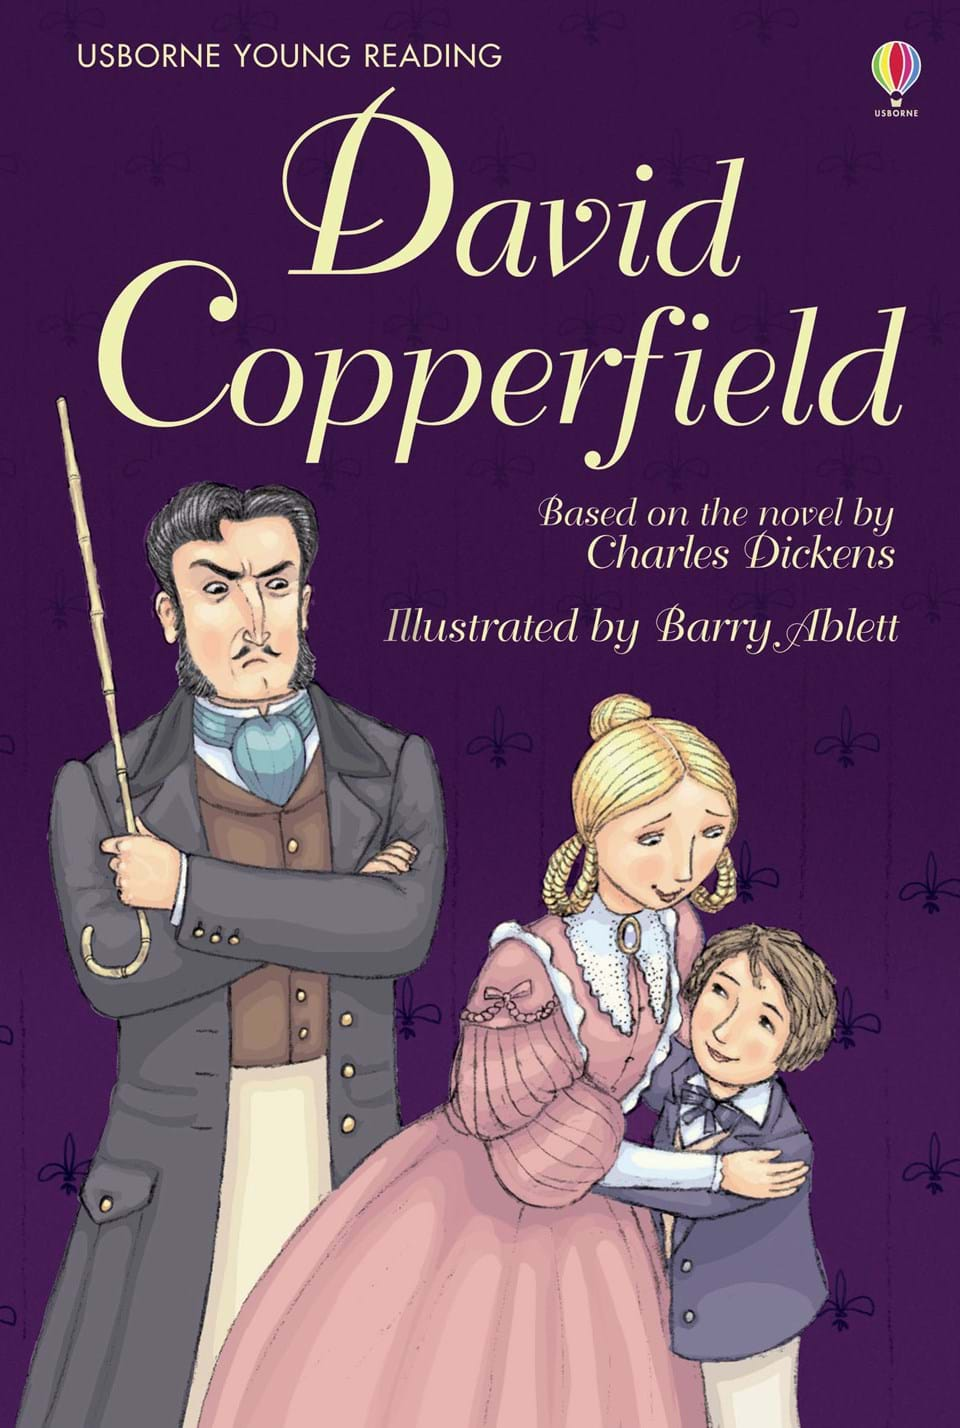 a review of charles dickens book david copperfield